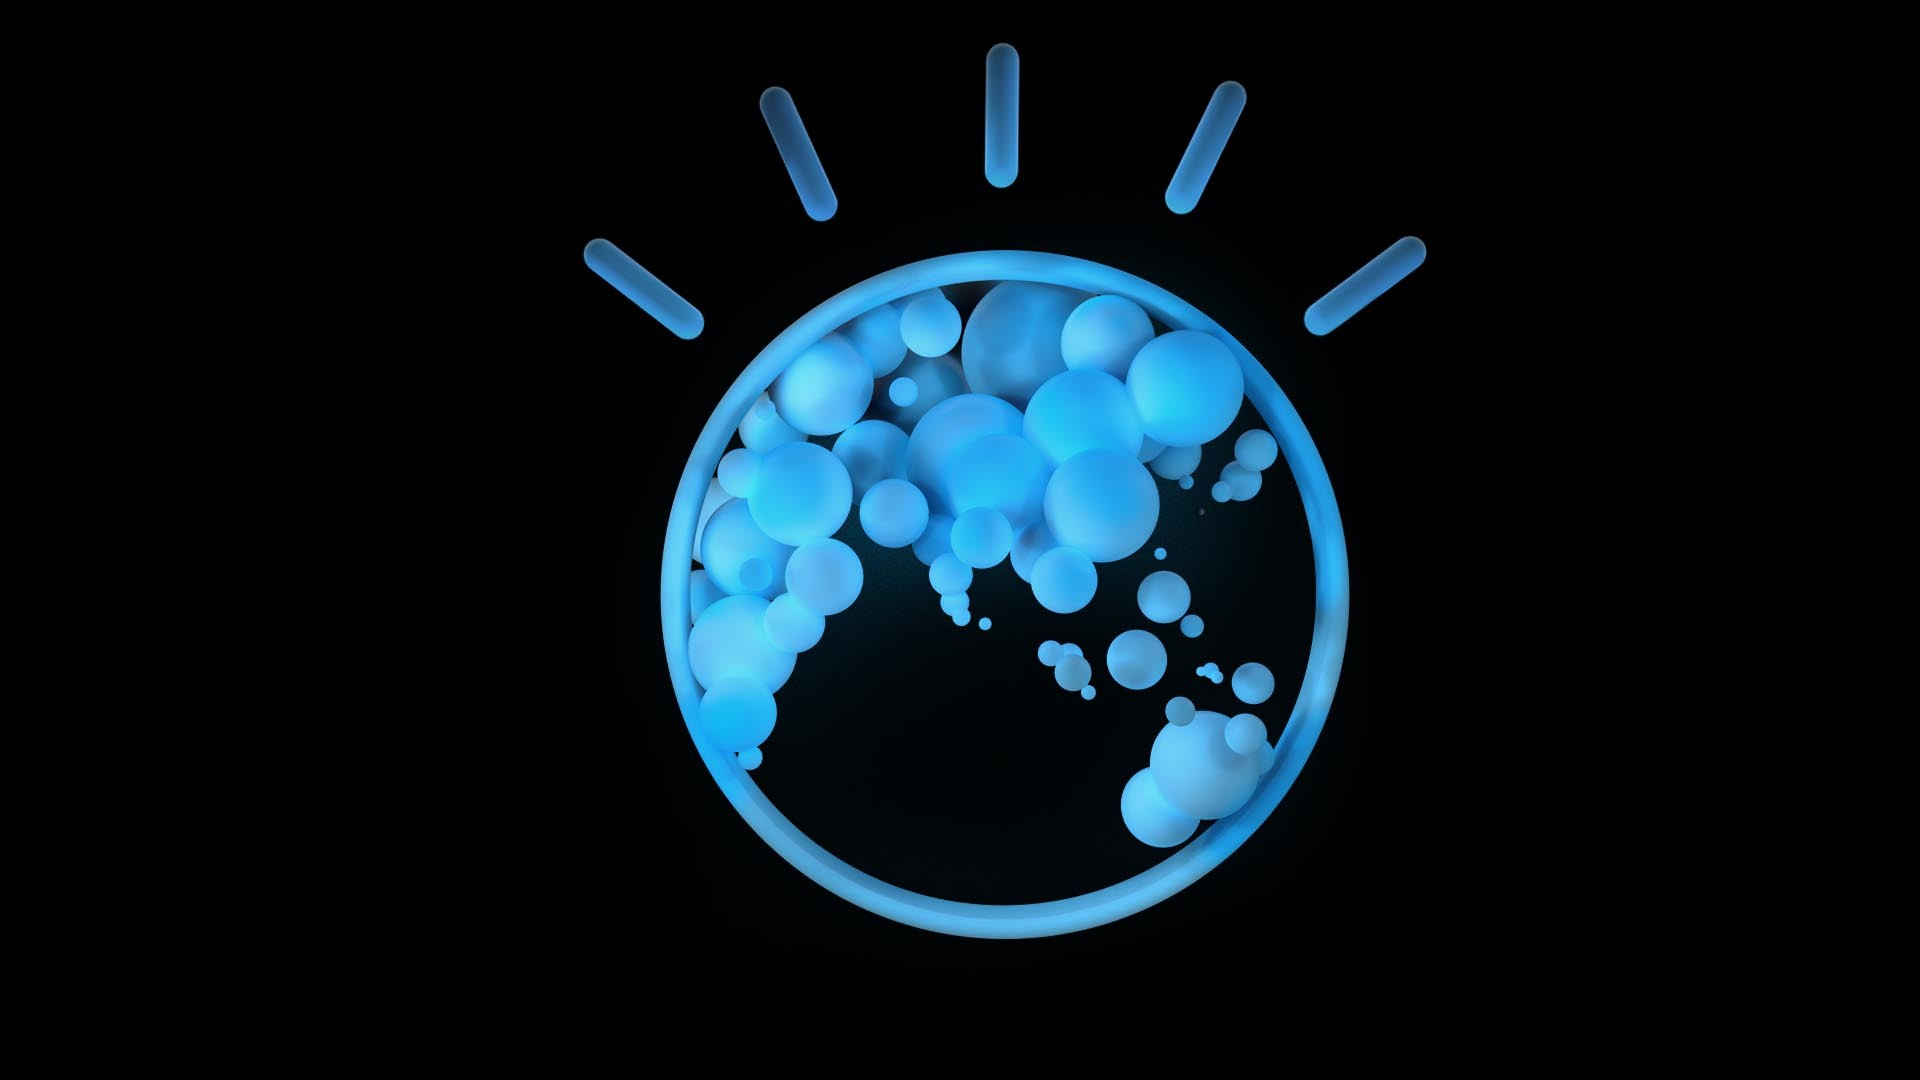 IBM Watson Wallpaper 81 Images